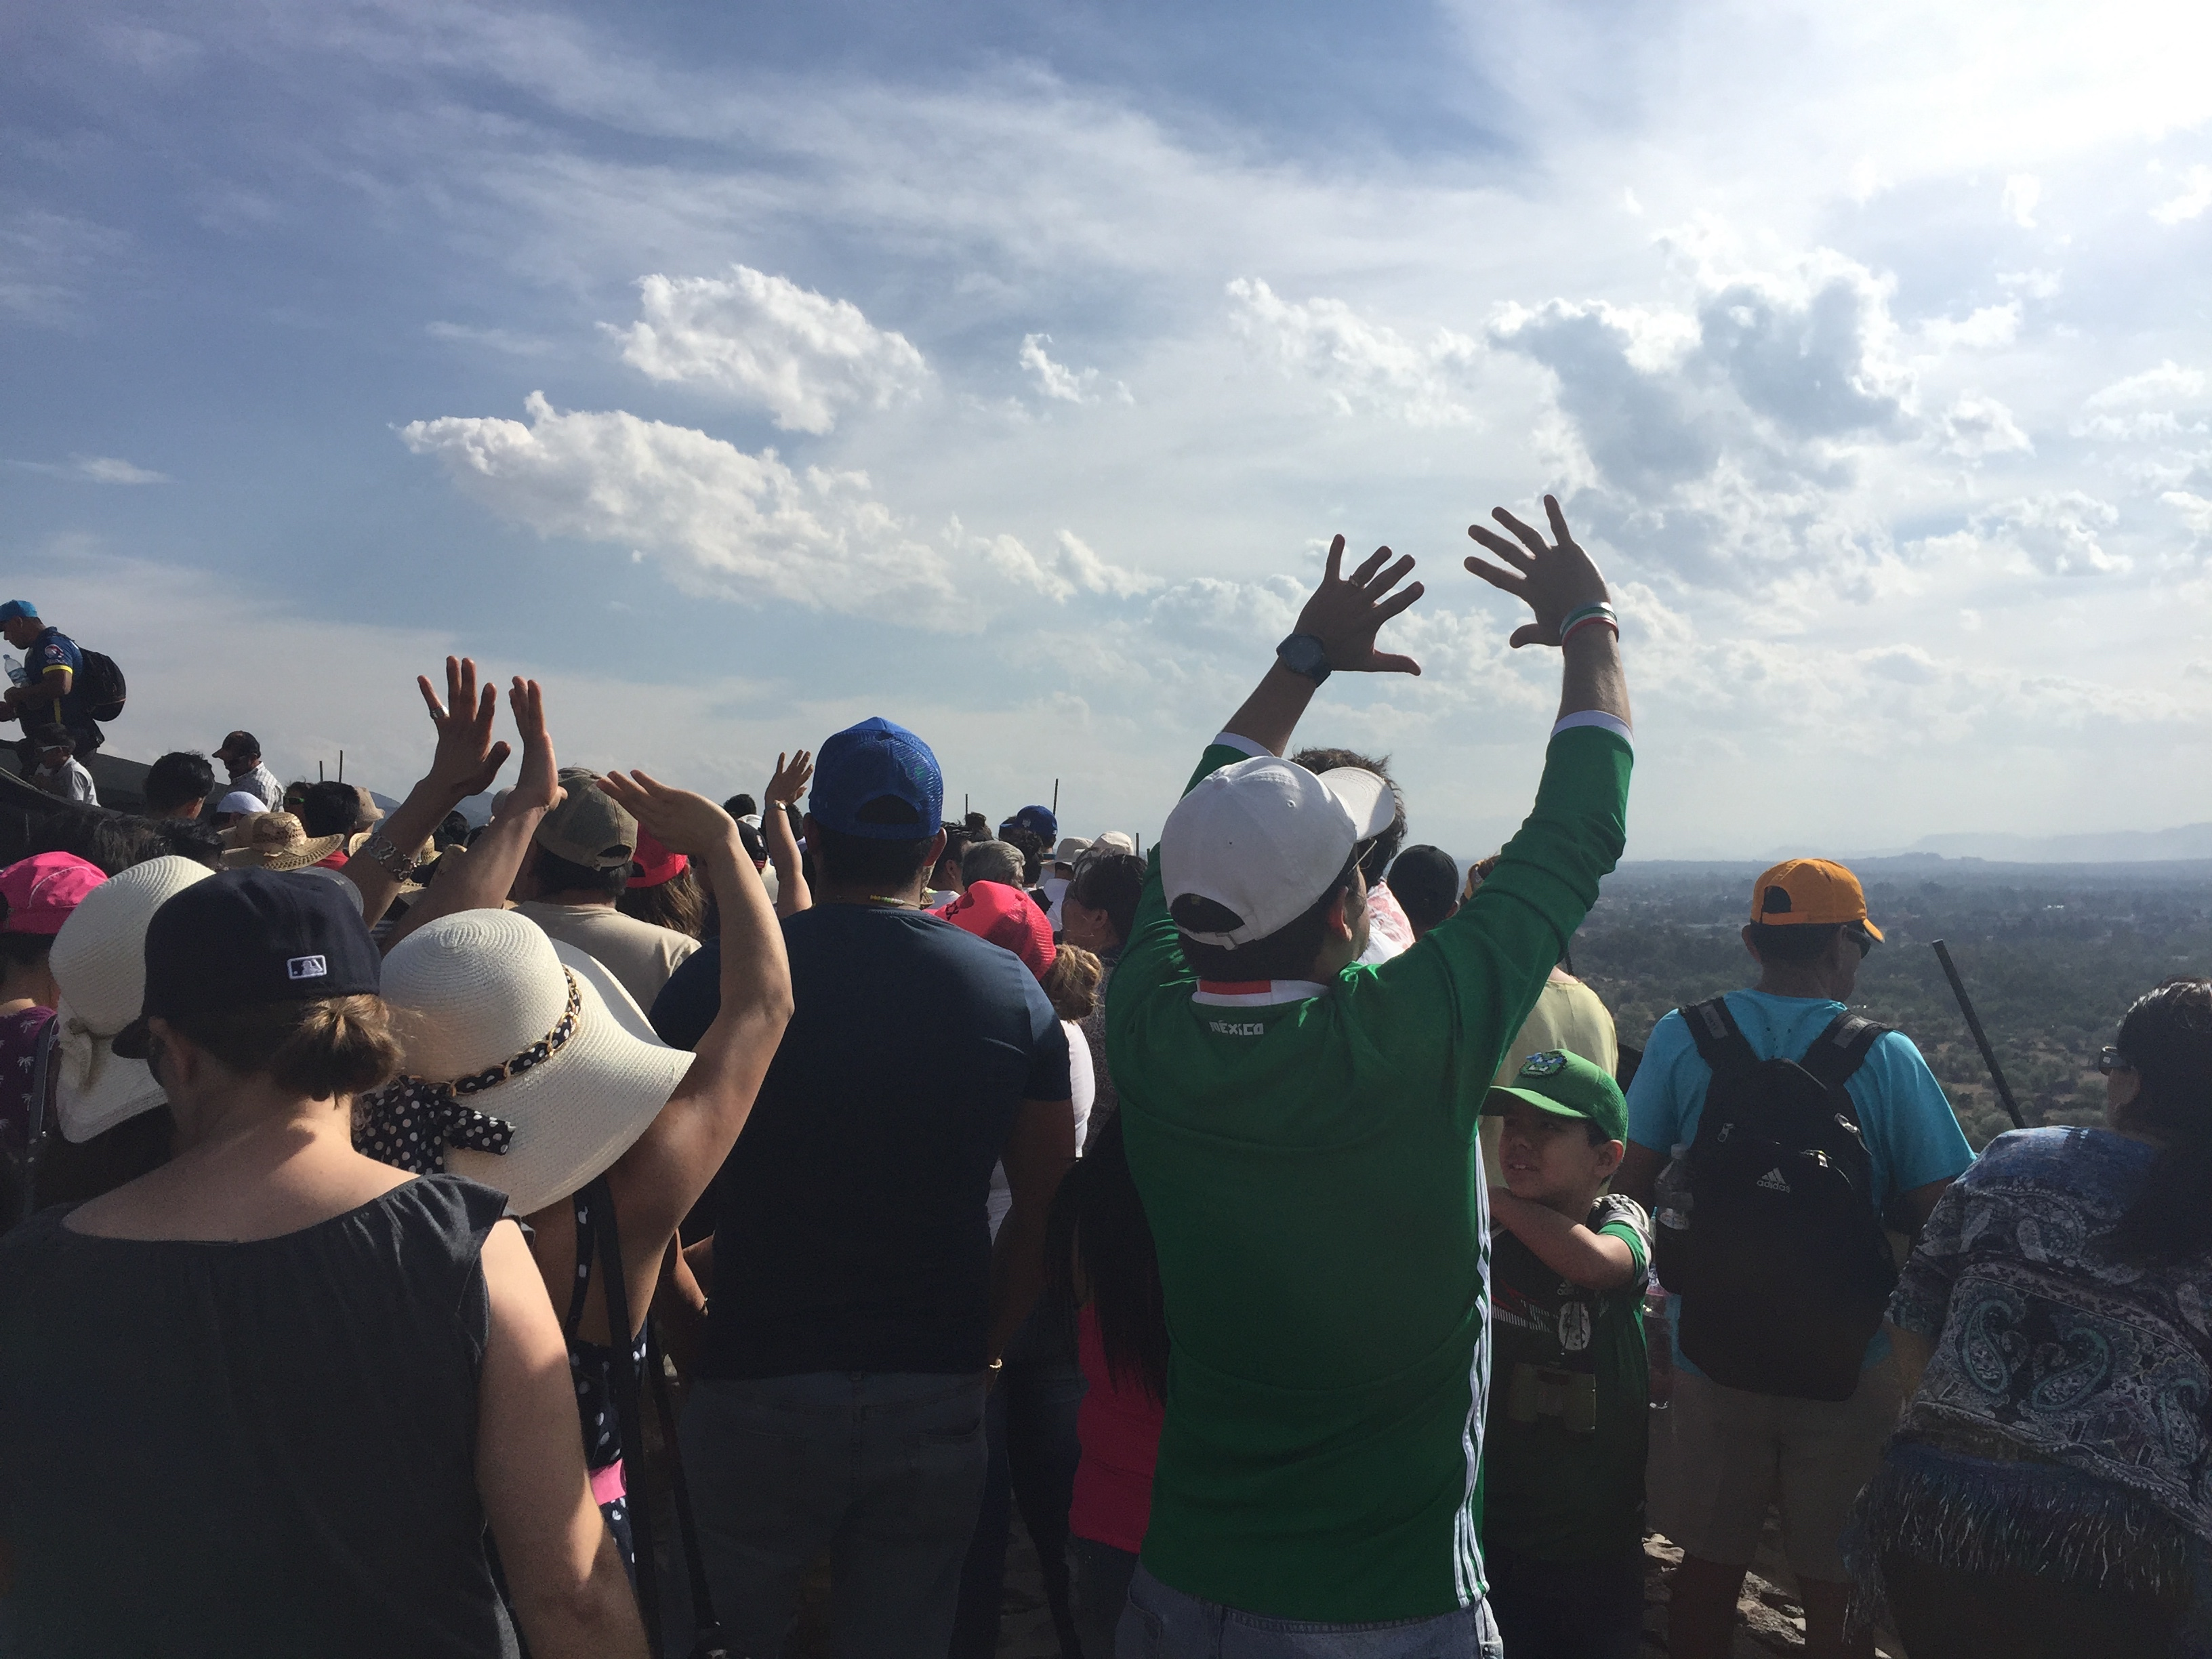 Tourists feel the energy of the sun at the pyramid of the sun in teotihuacan.